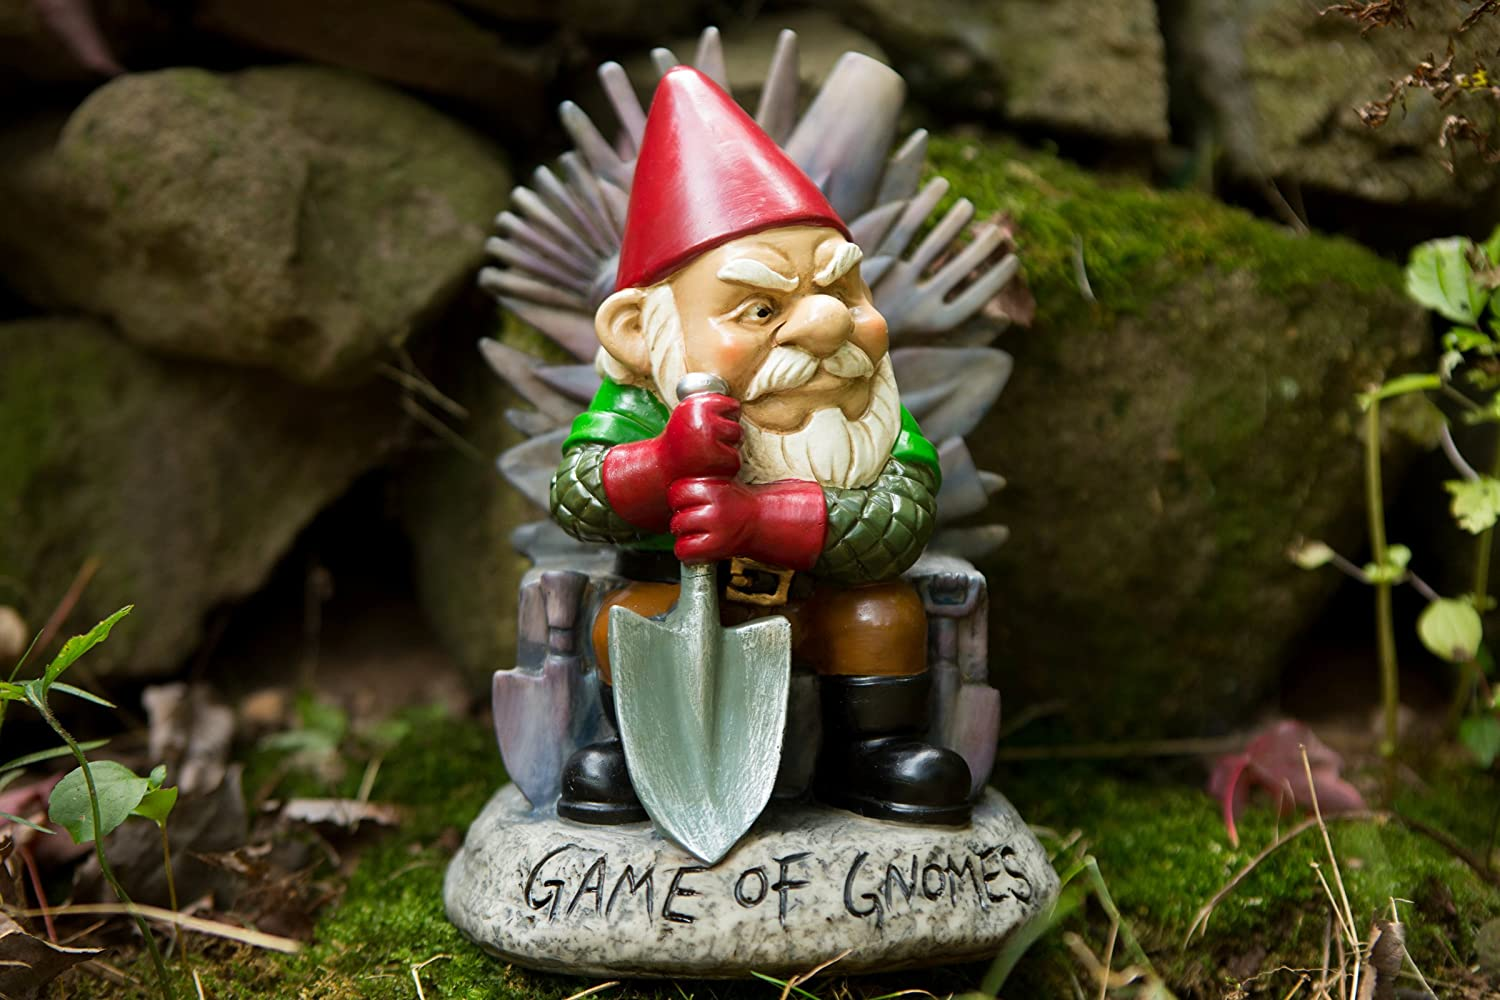 Funny Garden Gnomes: Best Gnomes For The Garden